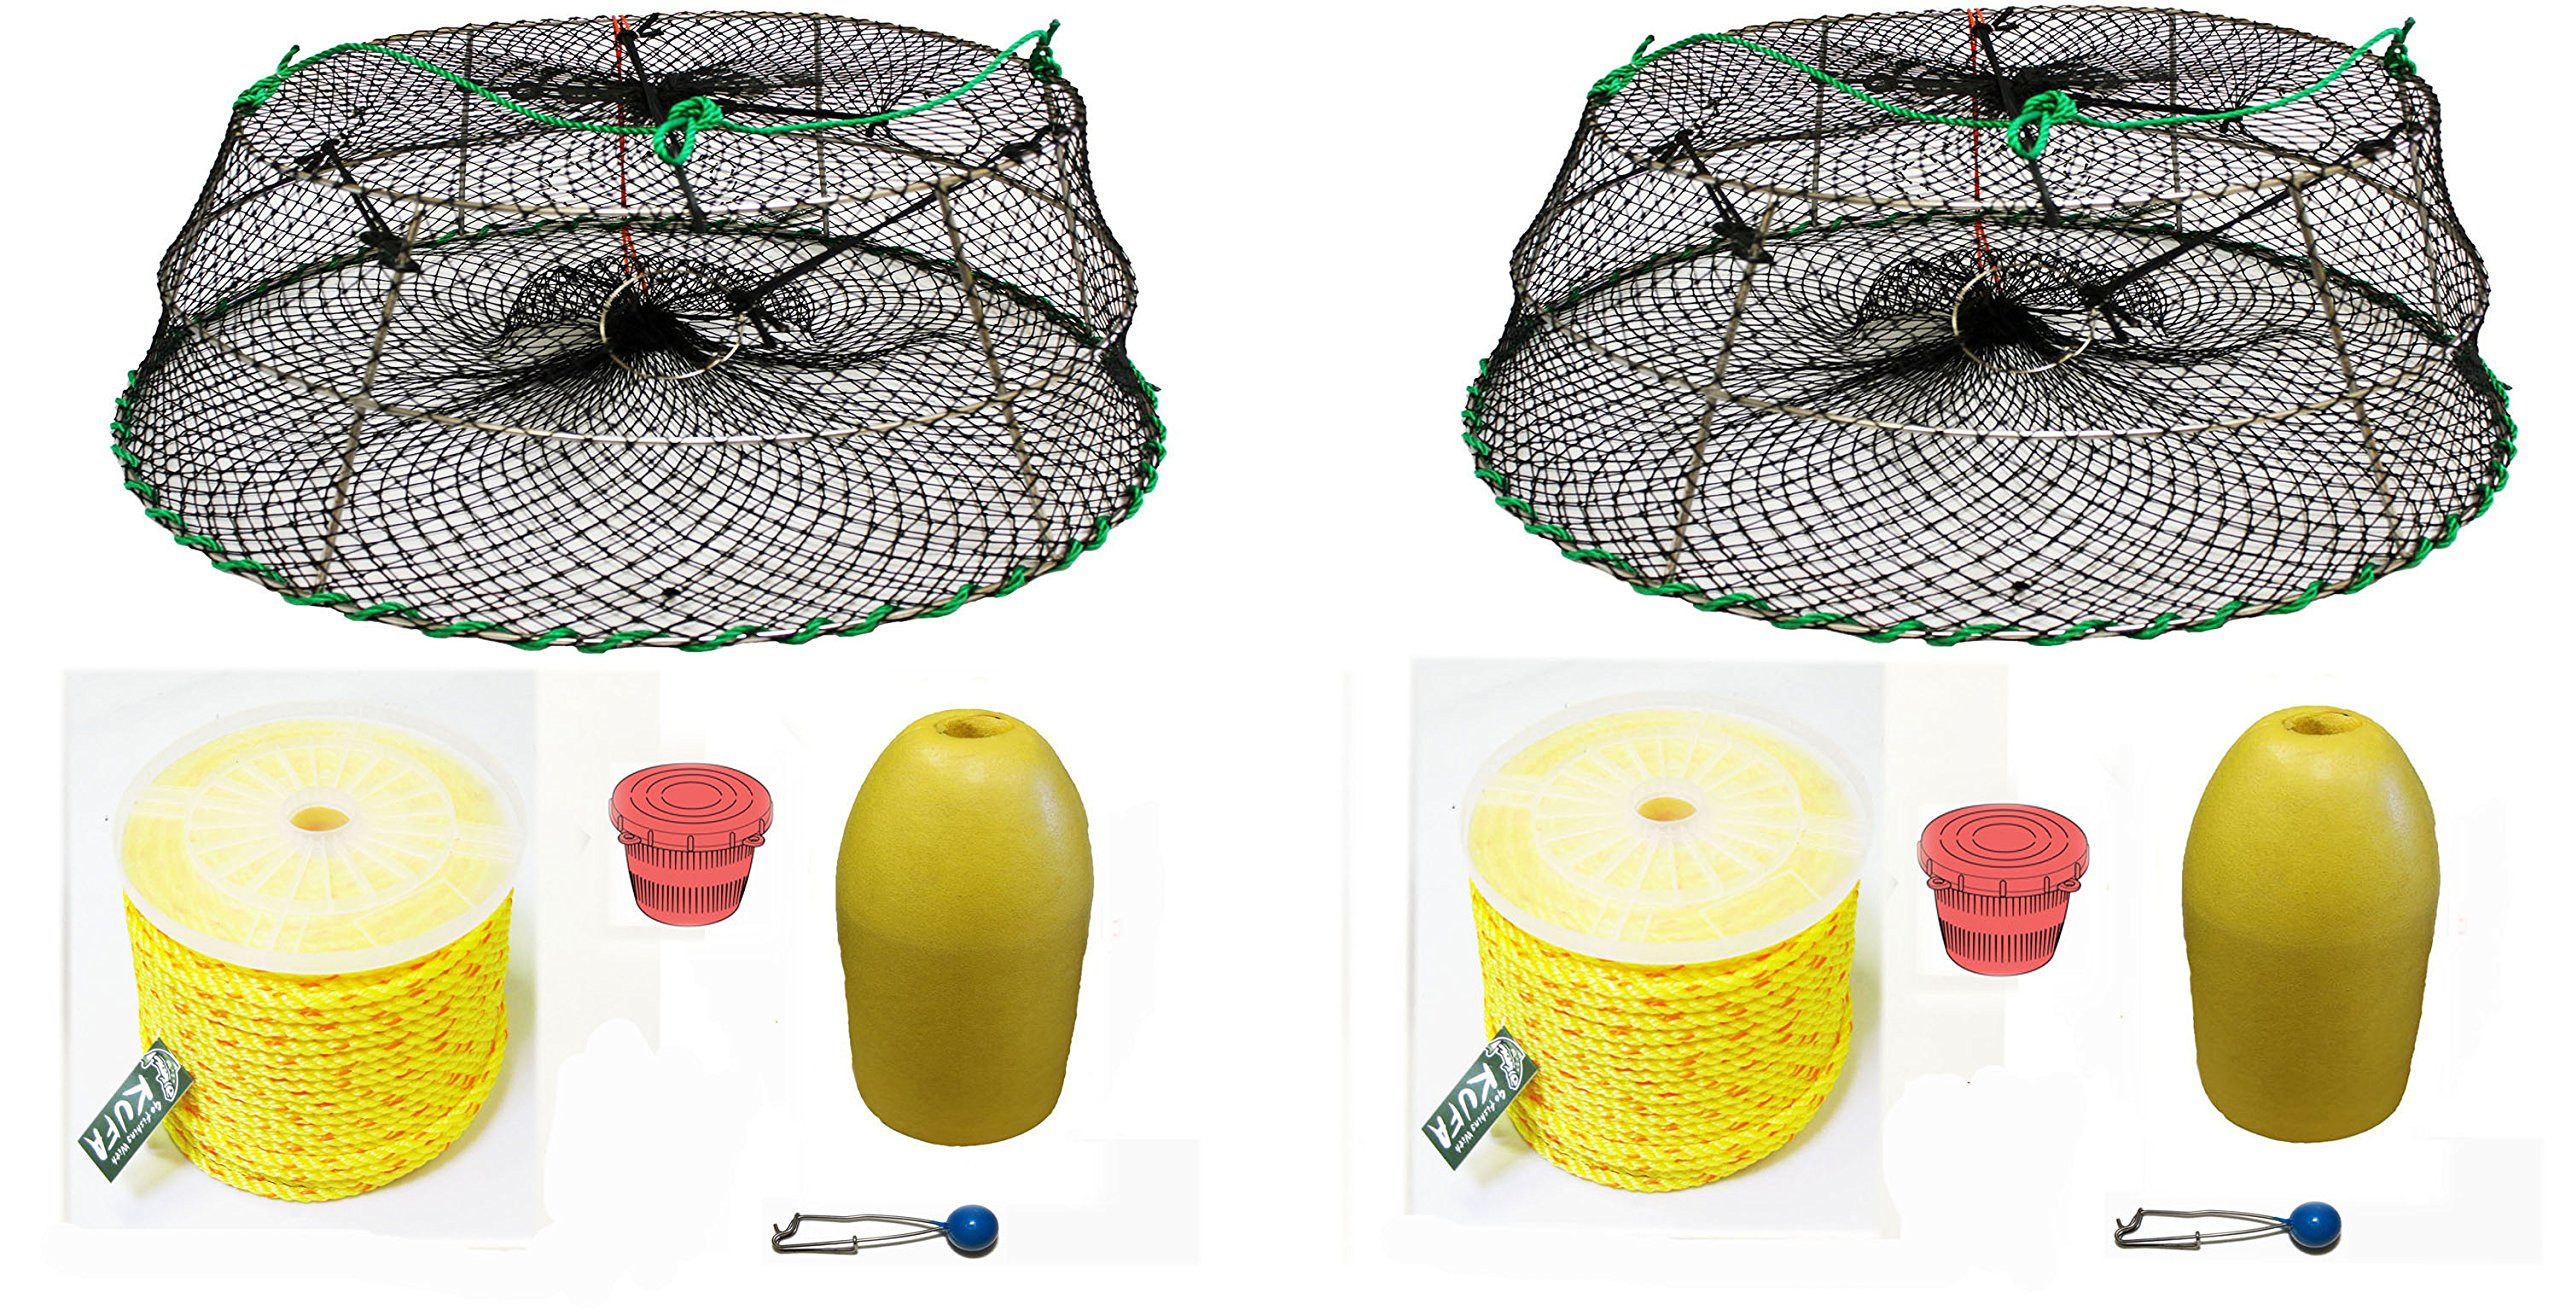 2-Pack of KUFA Sports Tower Style Prawn trap with 400' rope, Yellow float and Vented Bait Jar combo (CT77+PAP3)X2